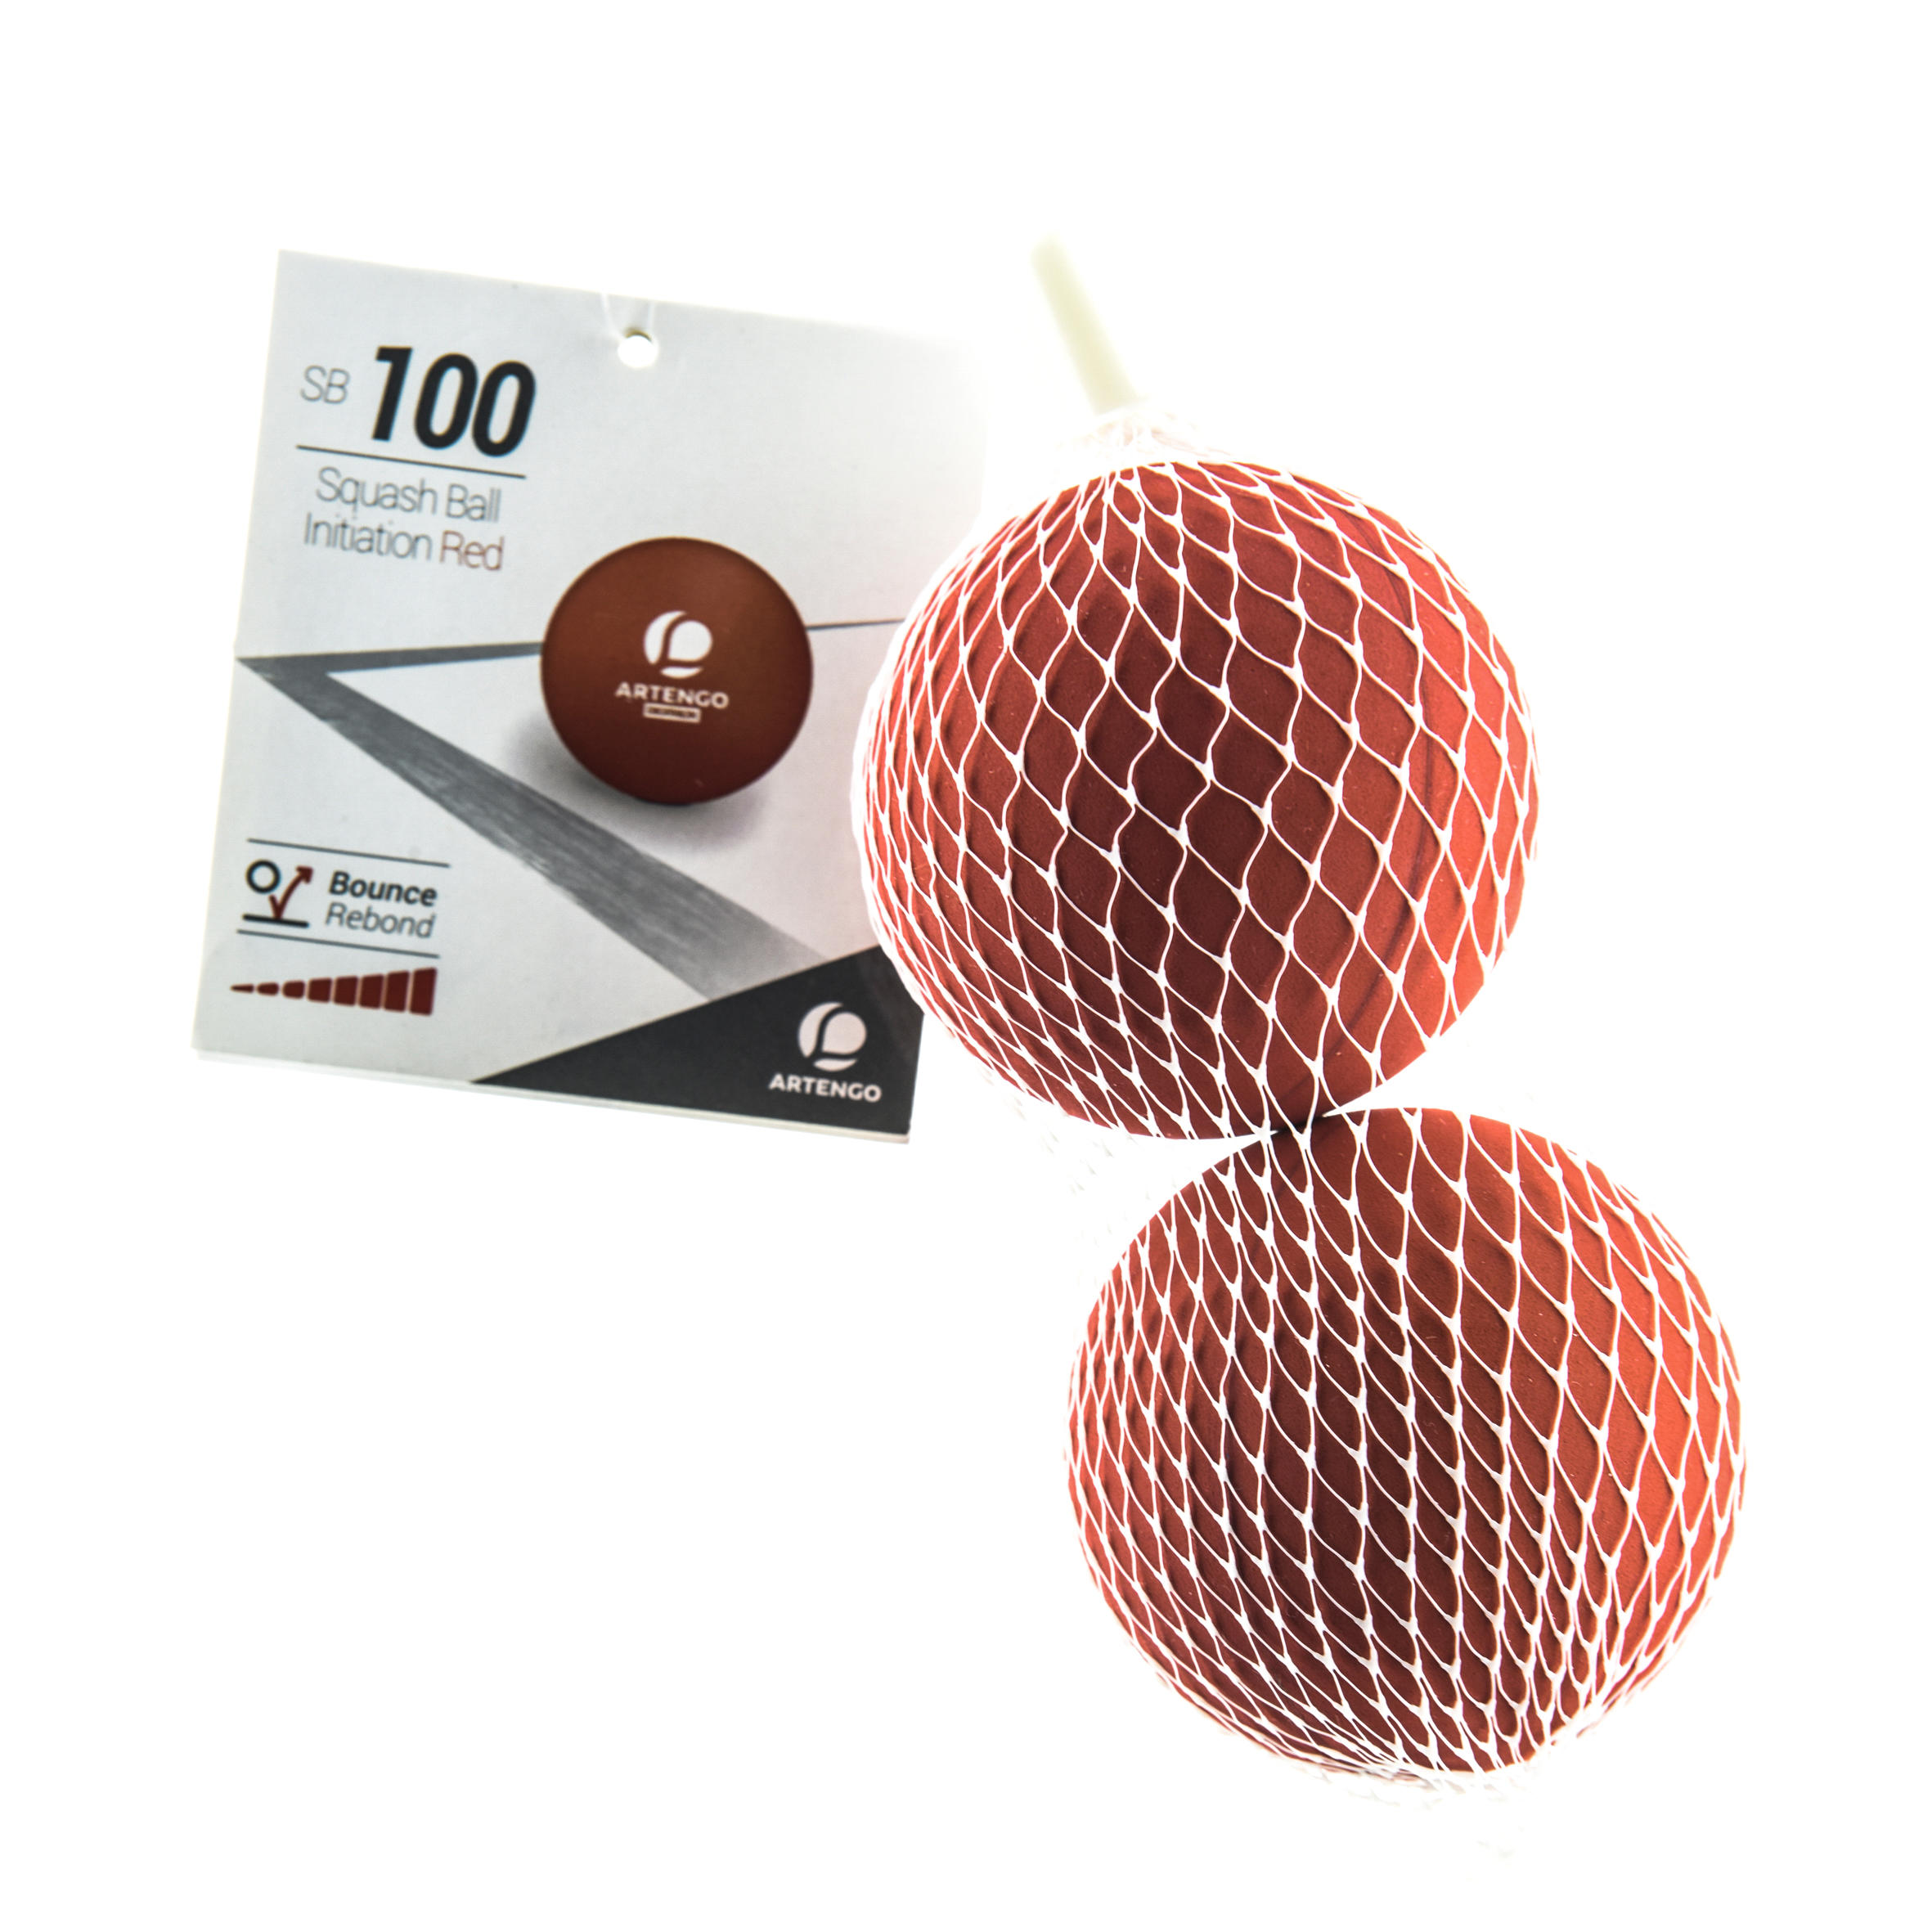 SB 100 Beginner Squash Ball Twin-Pack - Red